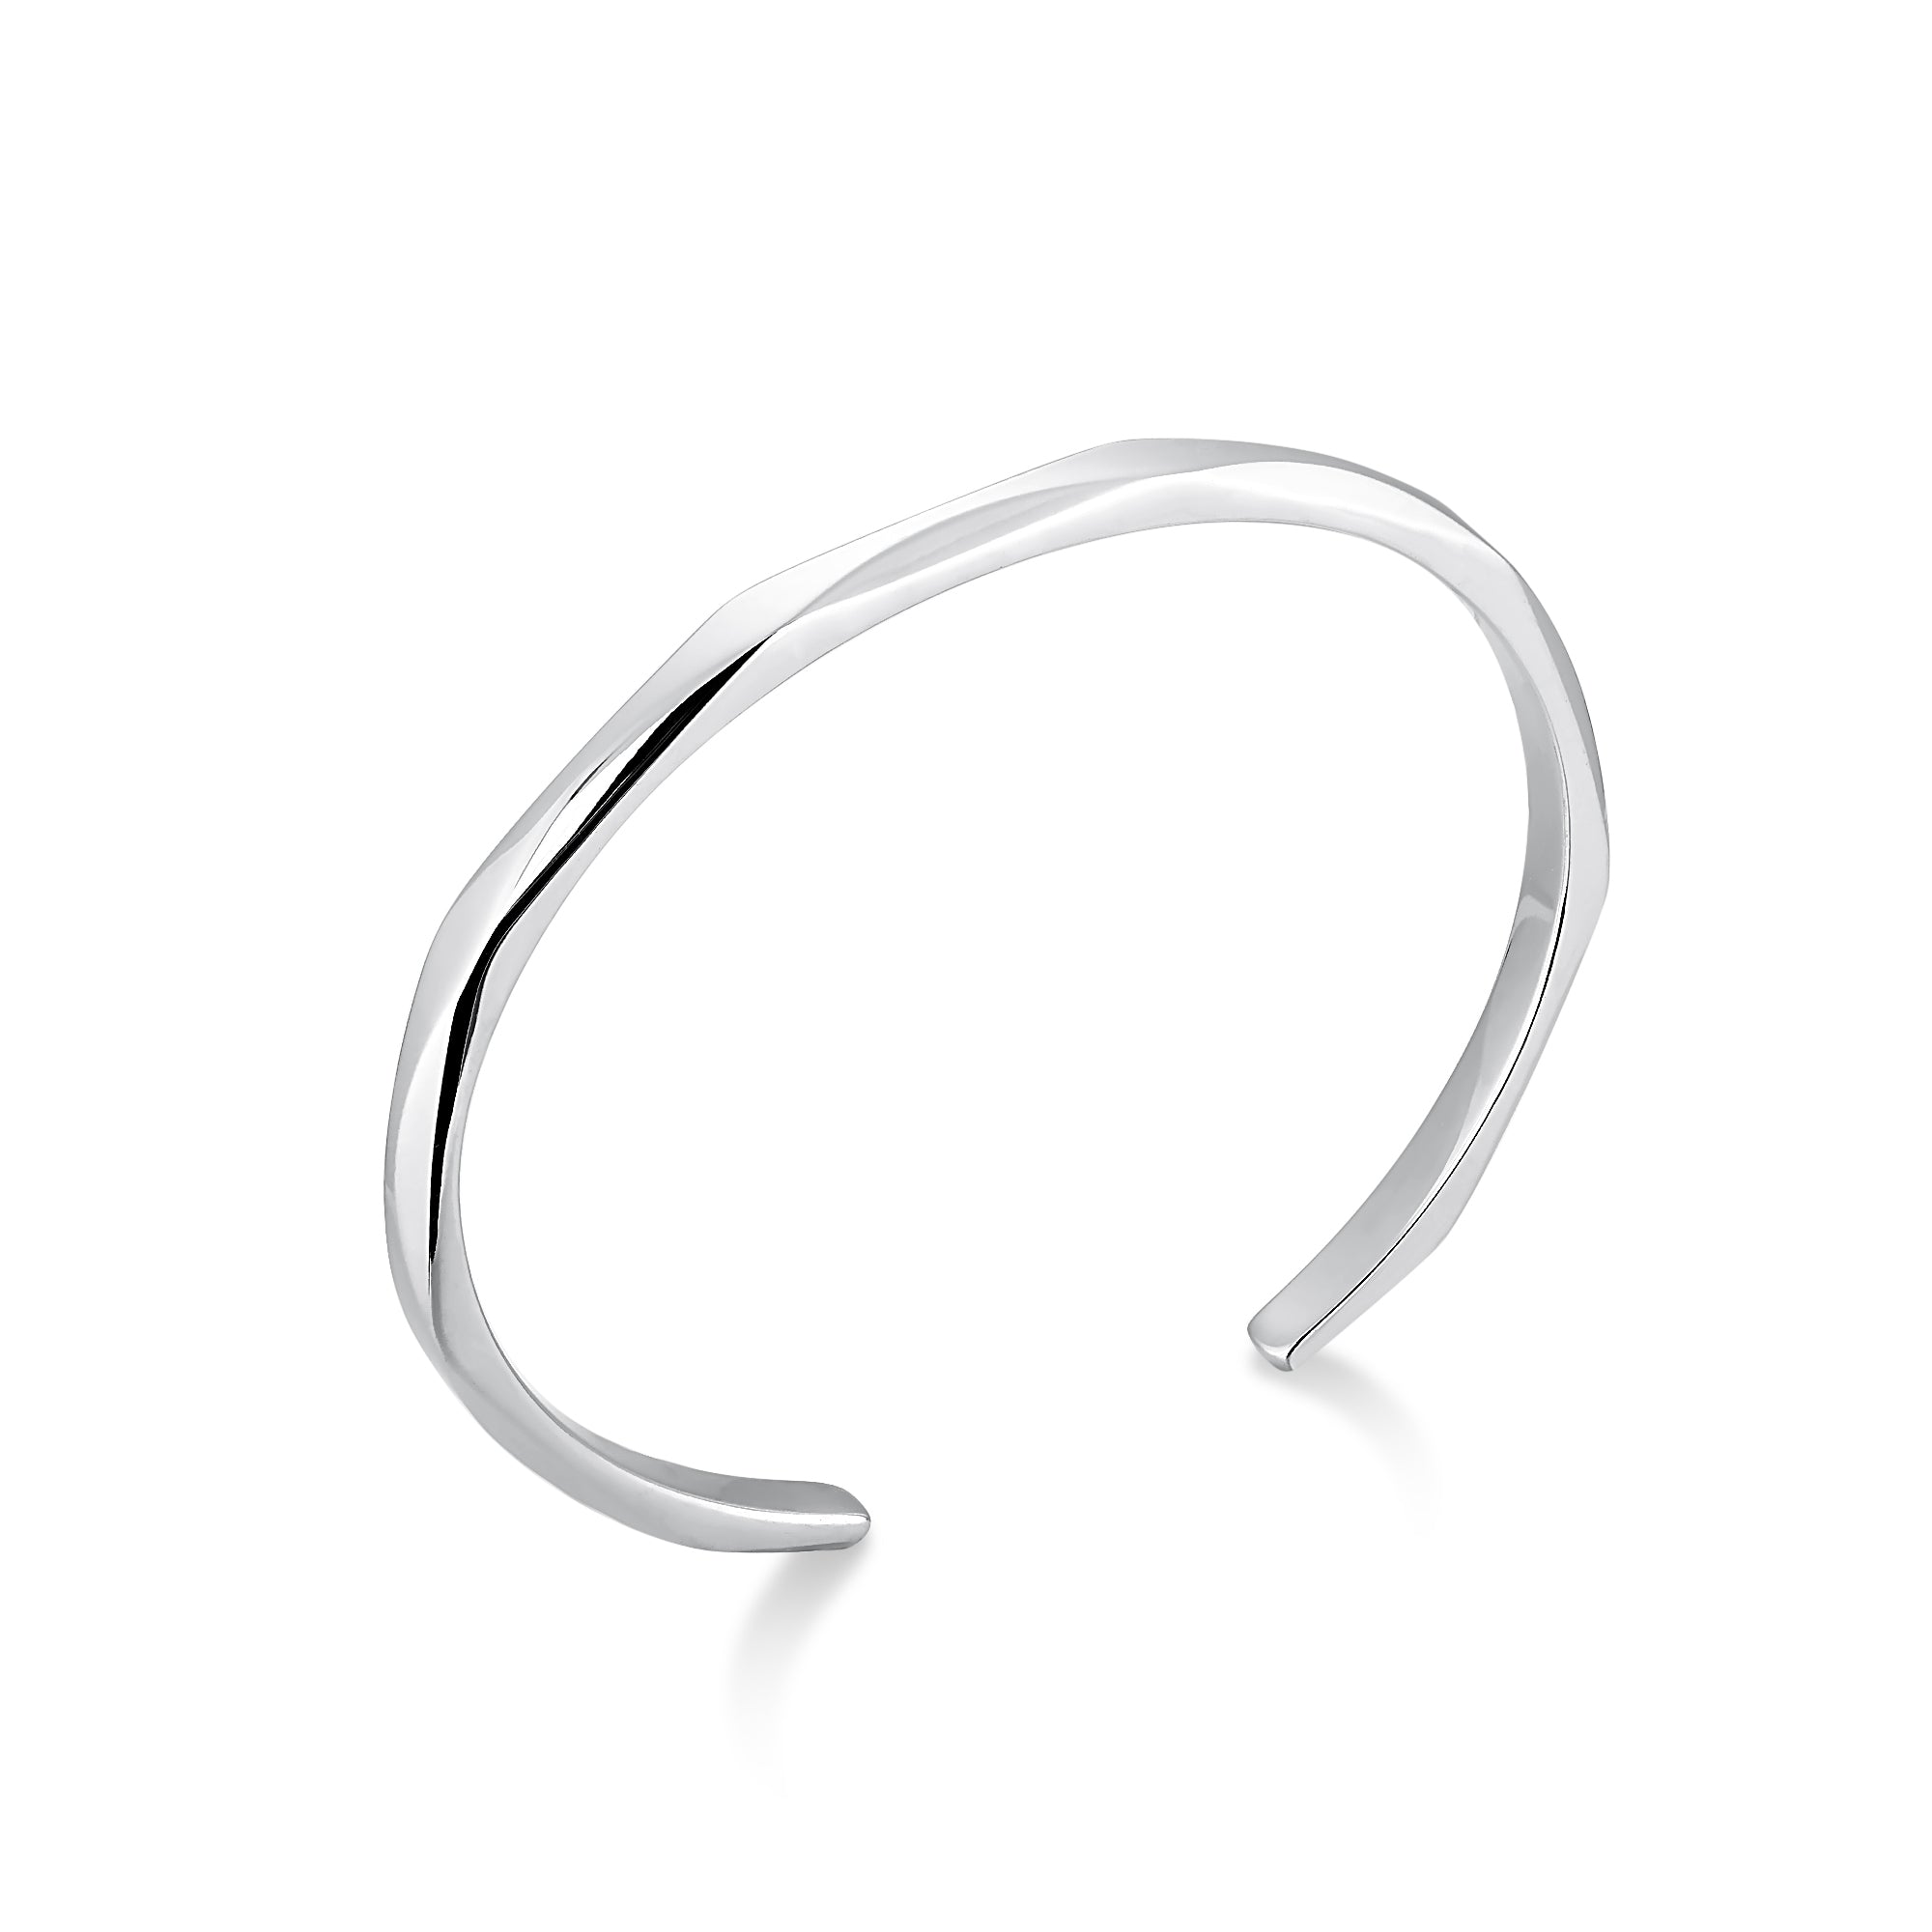 Rhodium Plated Wavy Narrow Cuff Bracelet